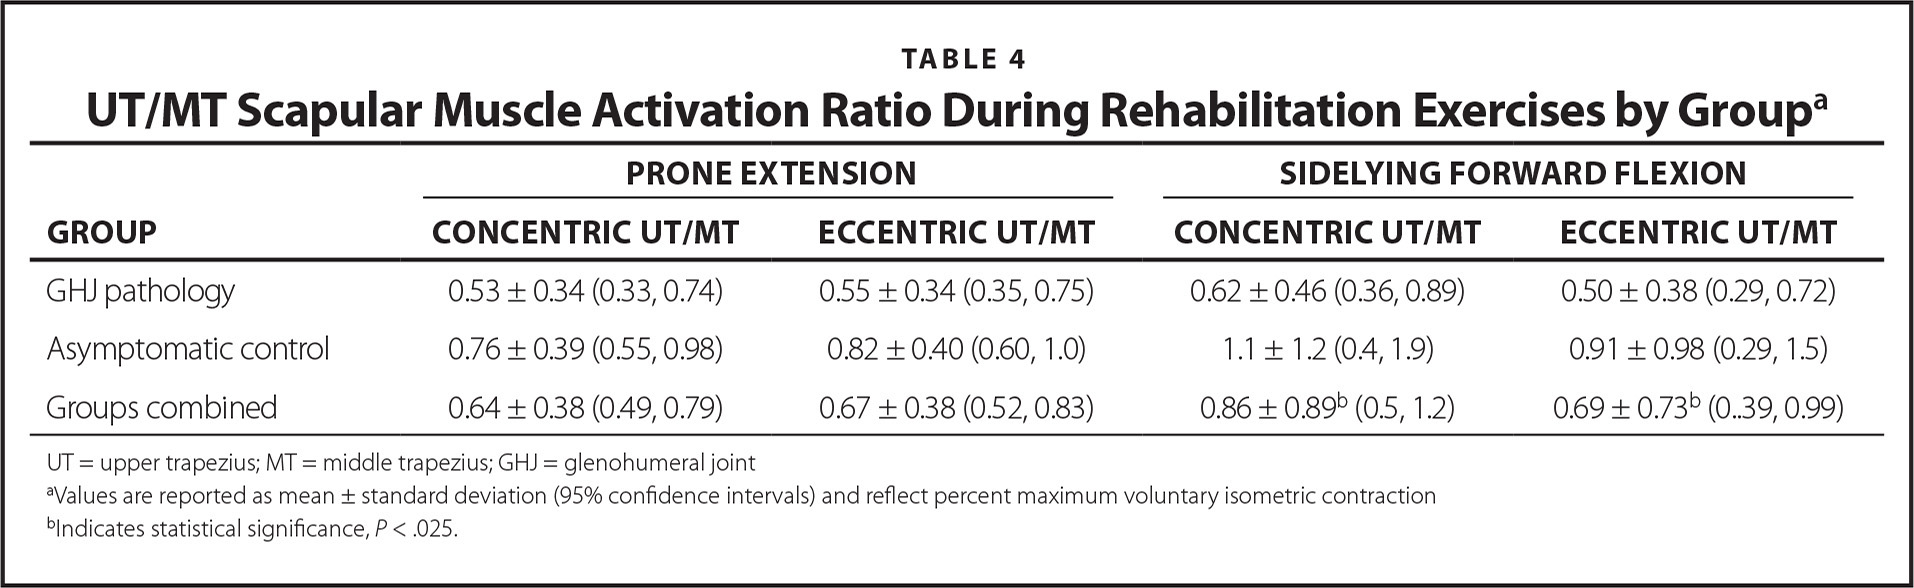 UT/MT Scapular Muscle Activation Ratio During Rehabilitation Exercises by Groupa